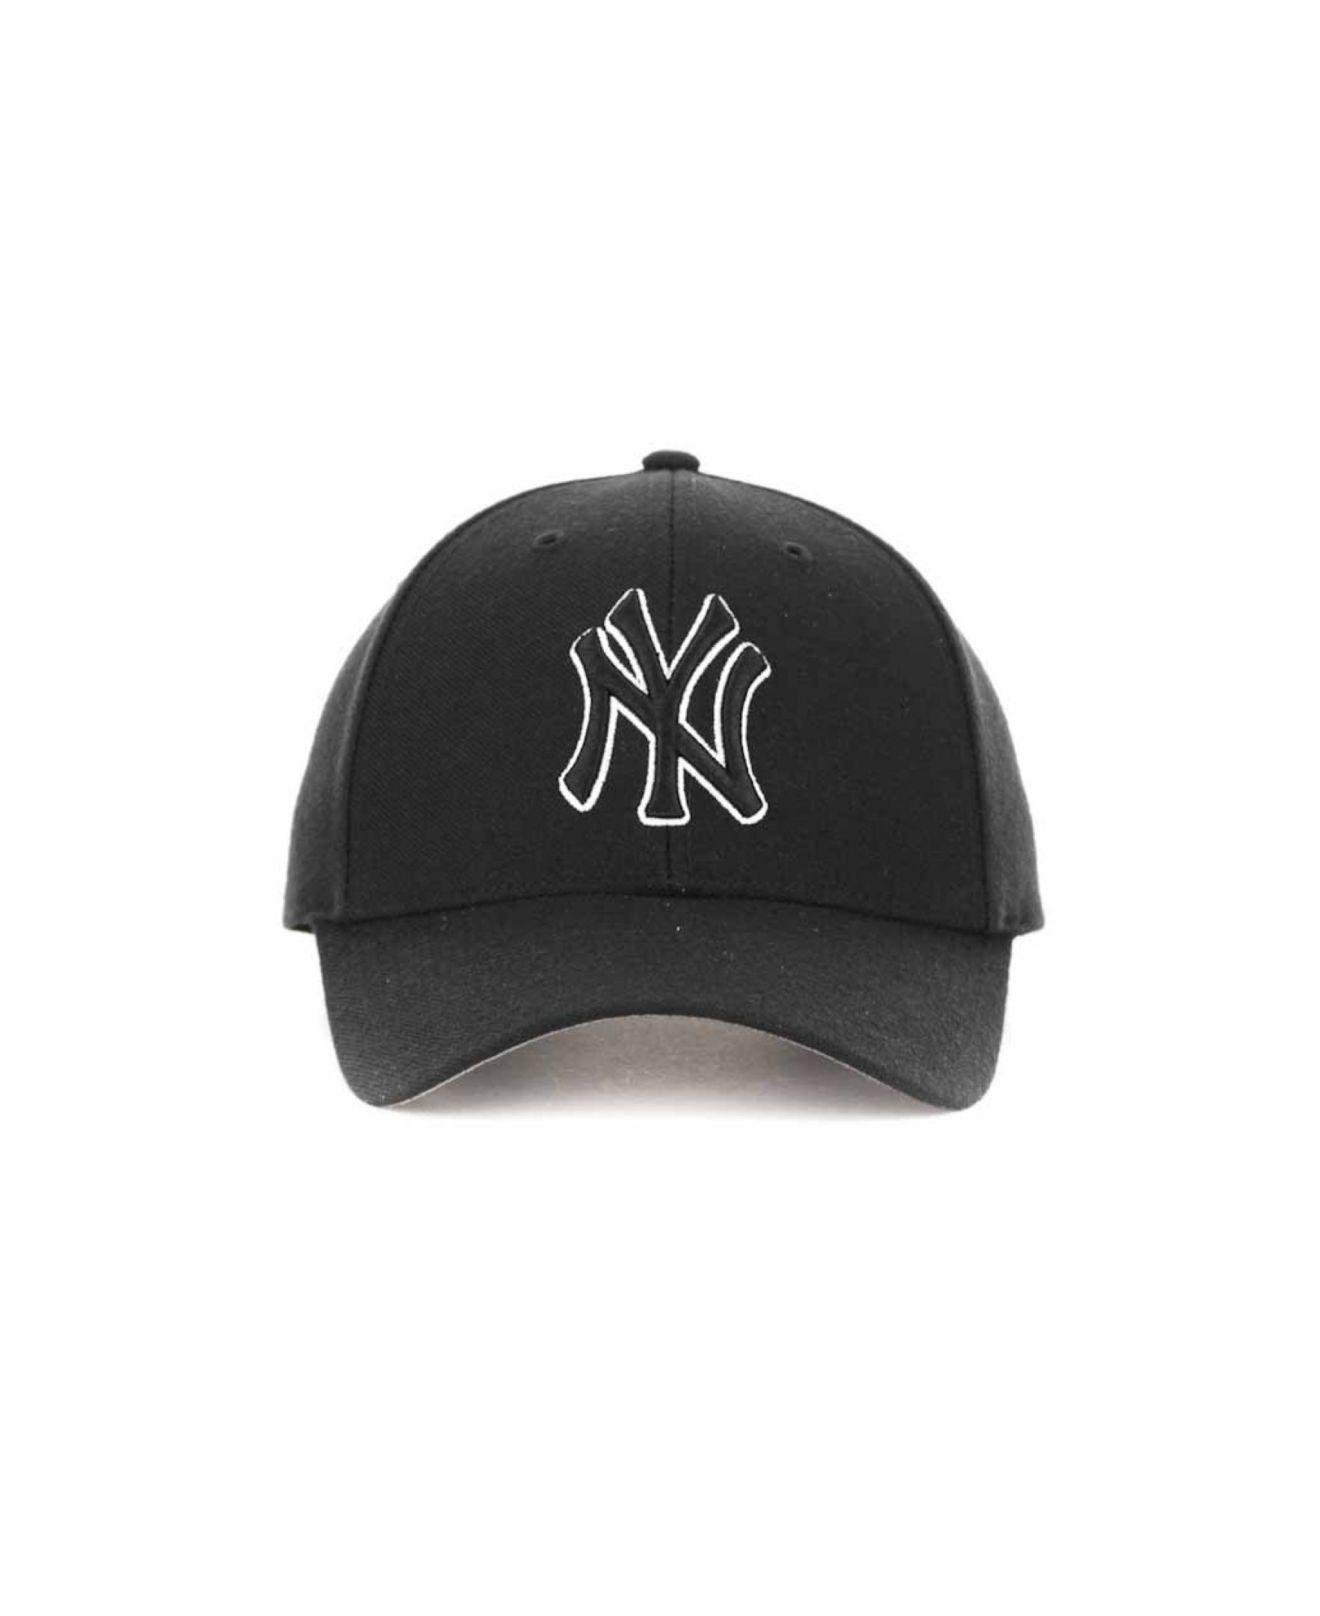 new product 61f65 cace0 ... usa lyst 47 brand new york yankees mvp curved cap in black 943e2 1262e